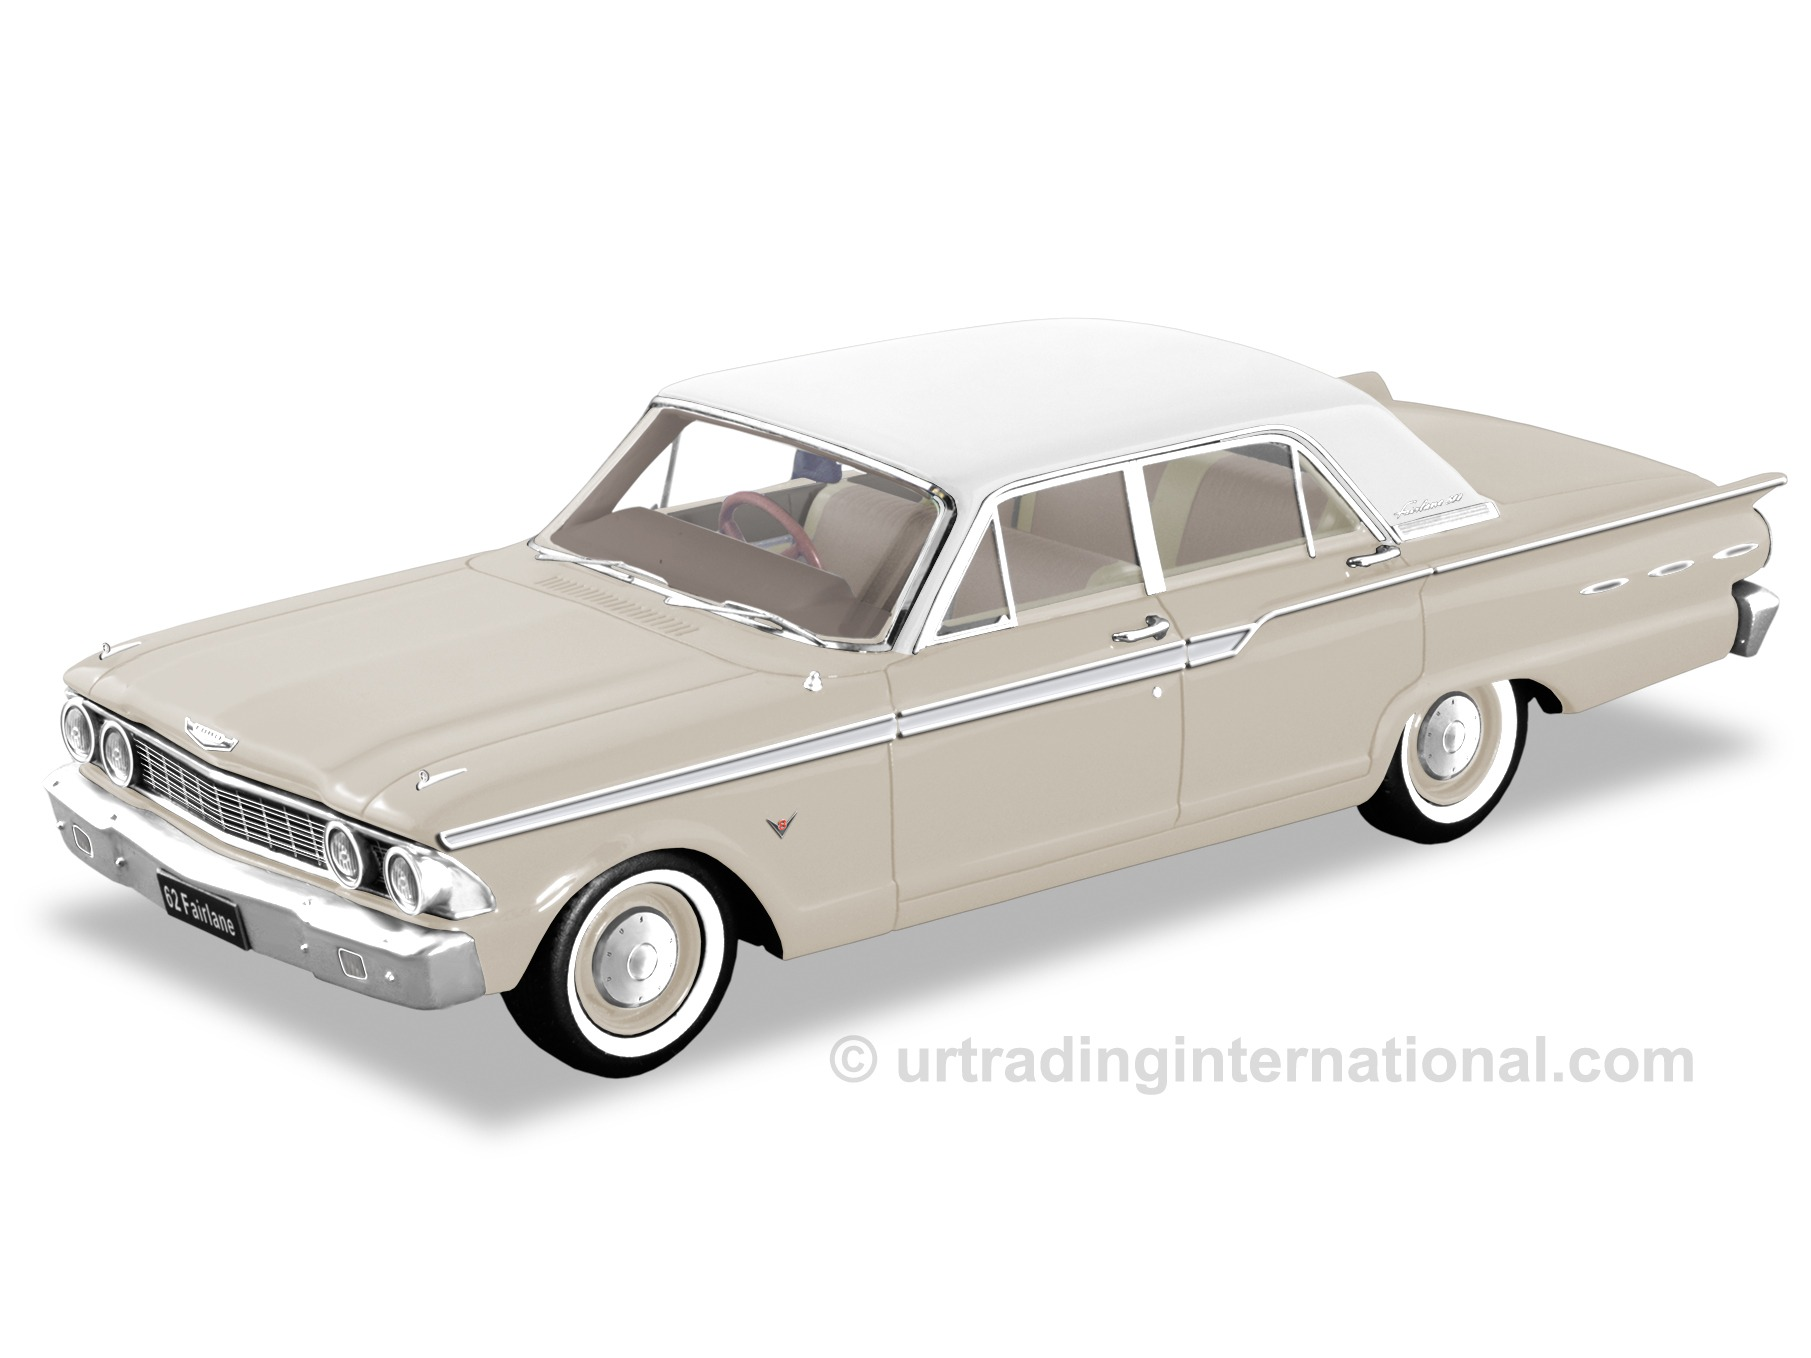 1962 Ford Fairlane Compact – Sandshell Beige.